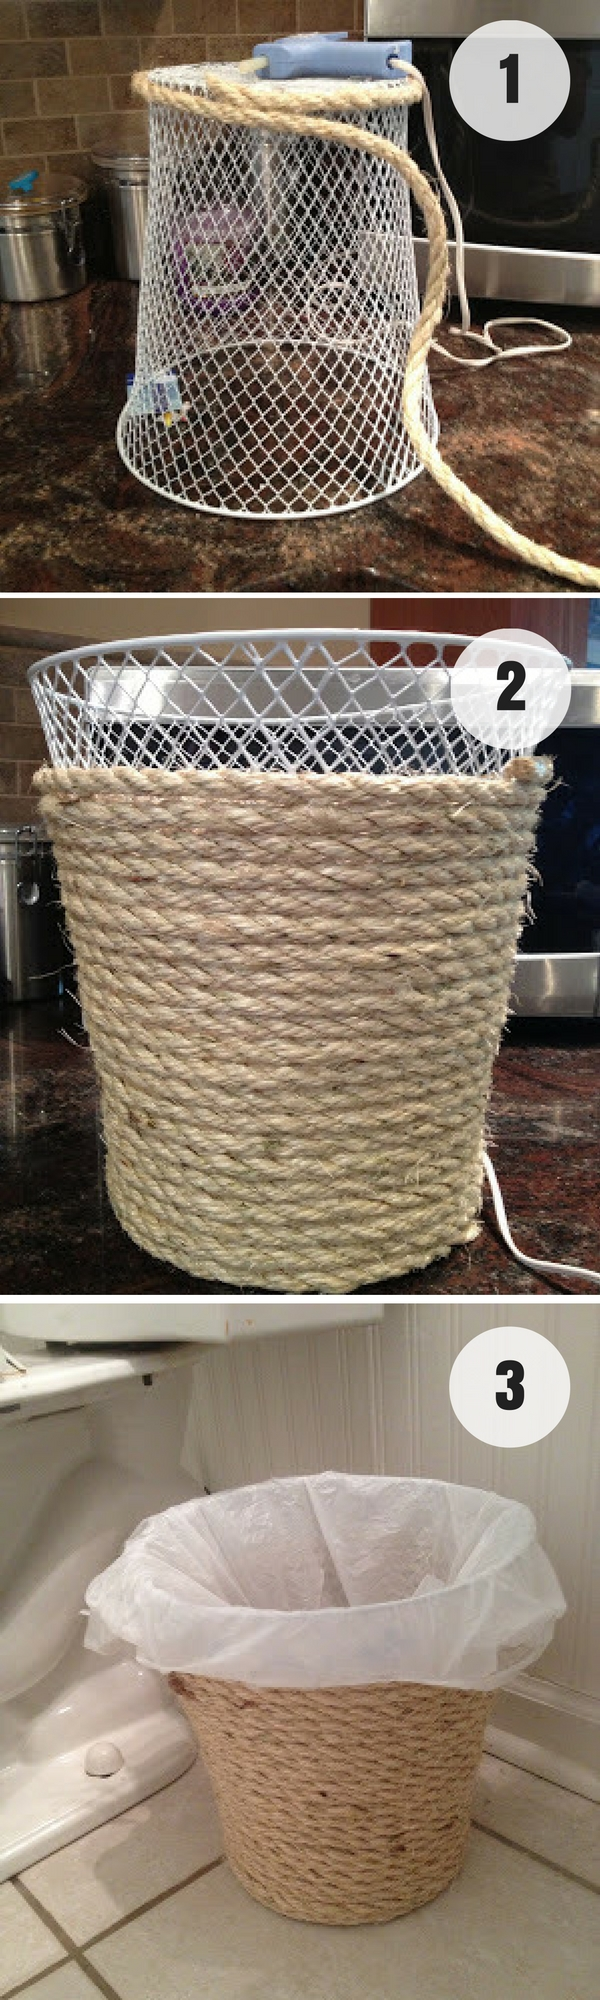 #DIY Rope Trash Can for rustic bathroom decor #bathroomdecor